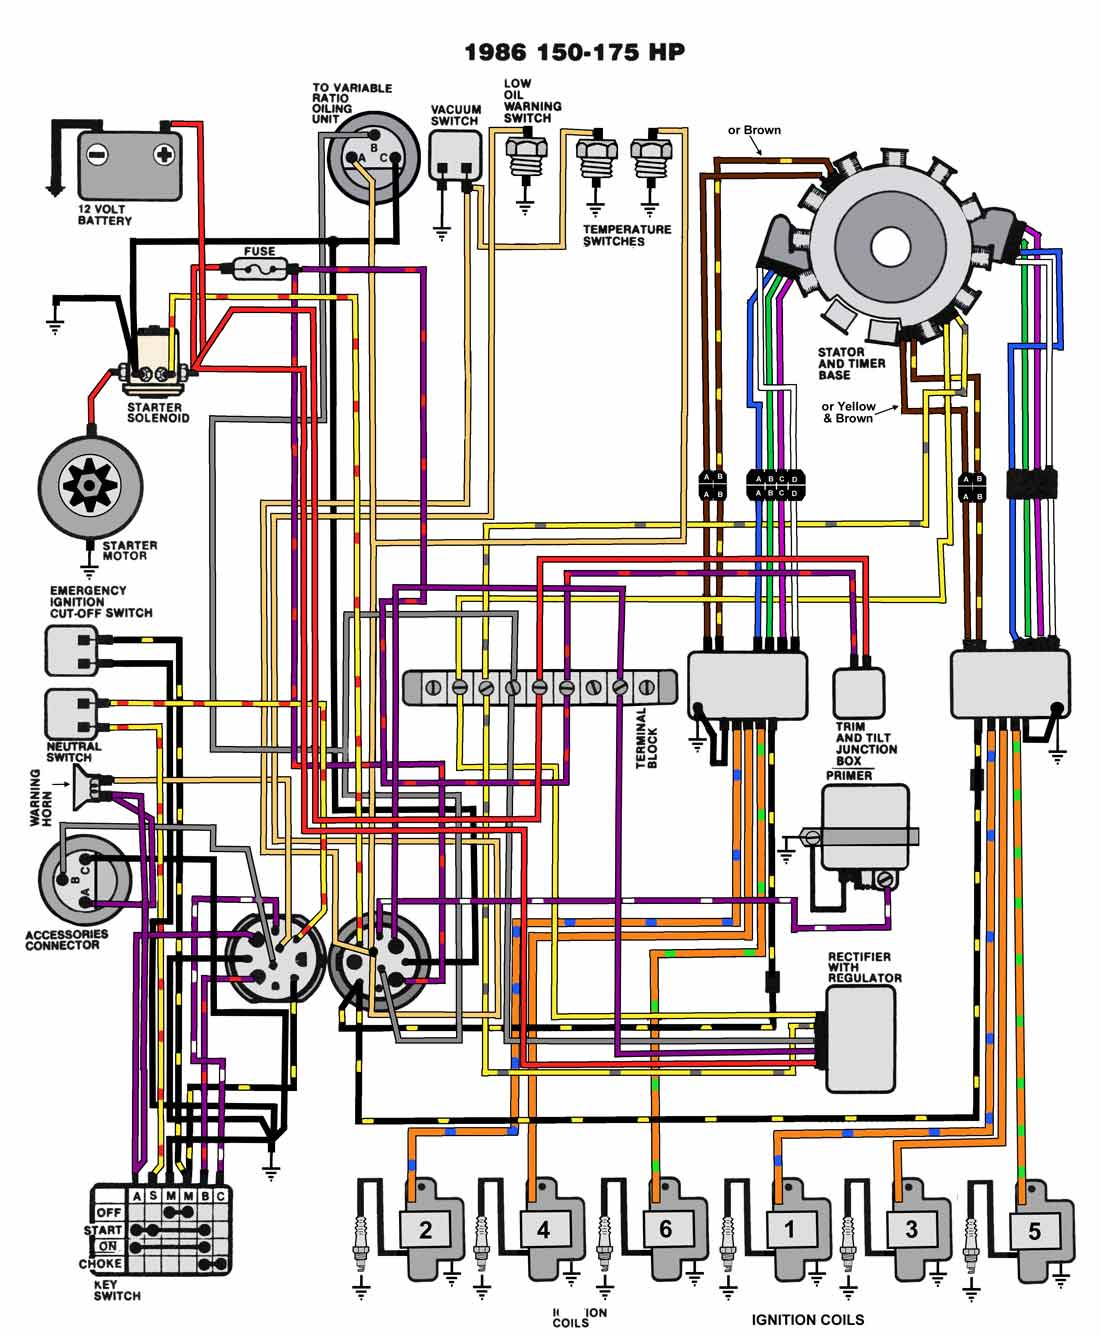 1986_150_175 mastertech marine evinrude johnson outboard wiring diagrams evinrude key switch wiring diagram at crackthecode.co